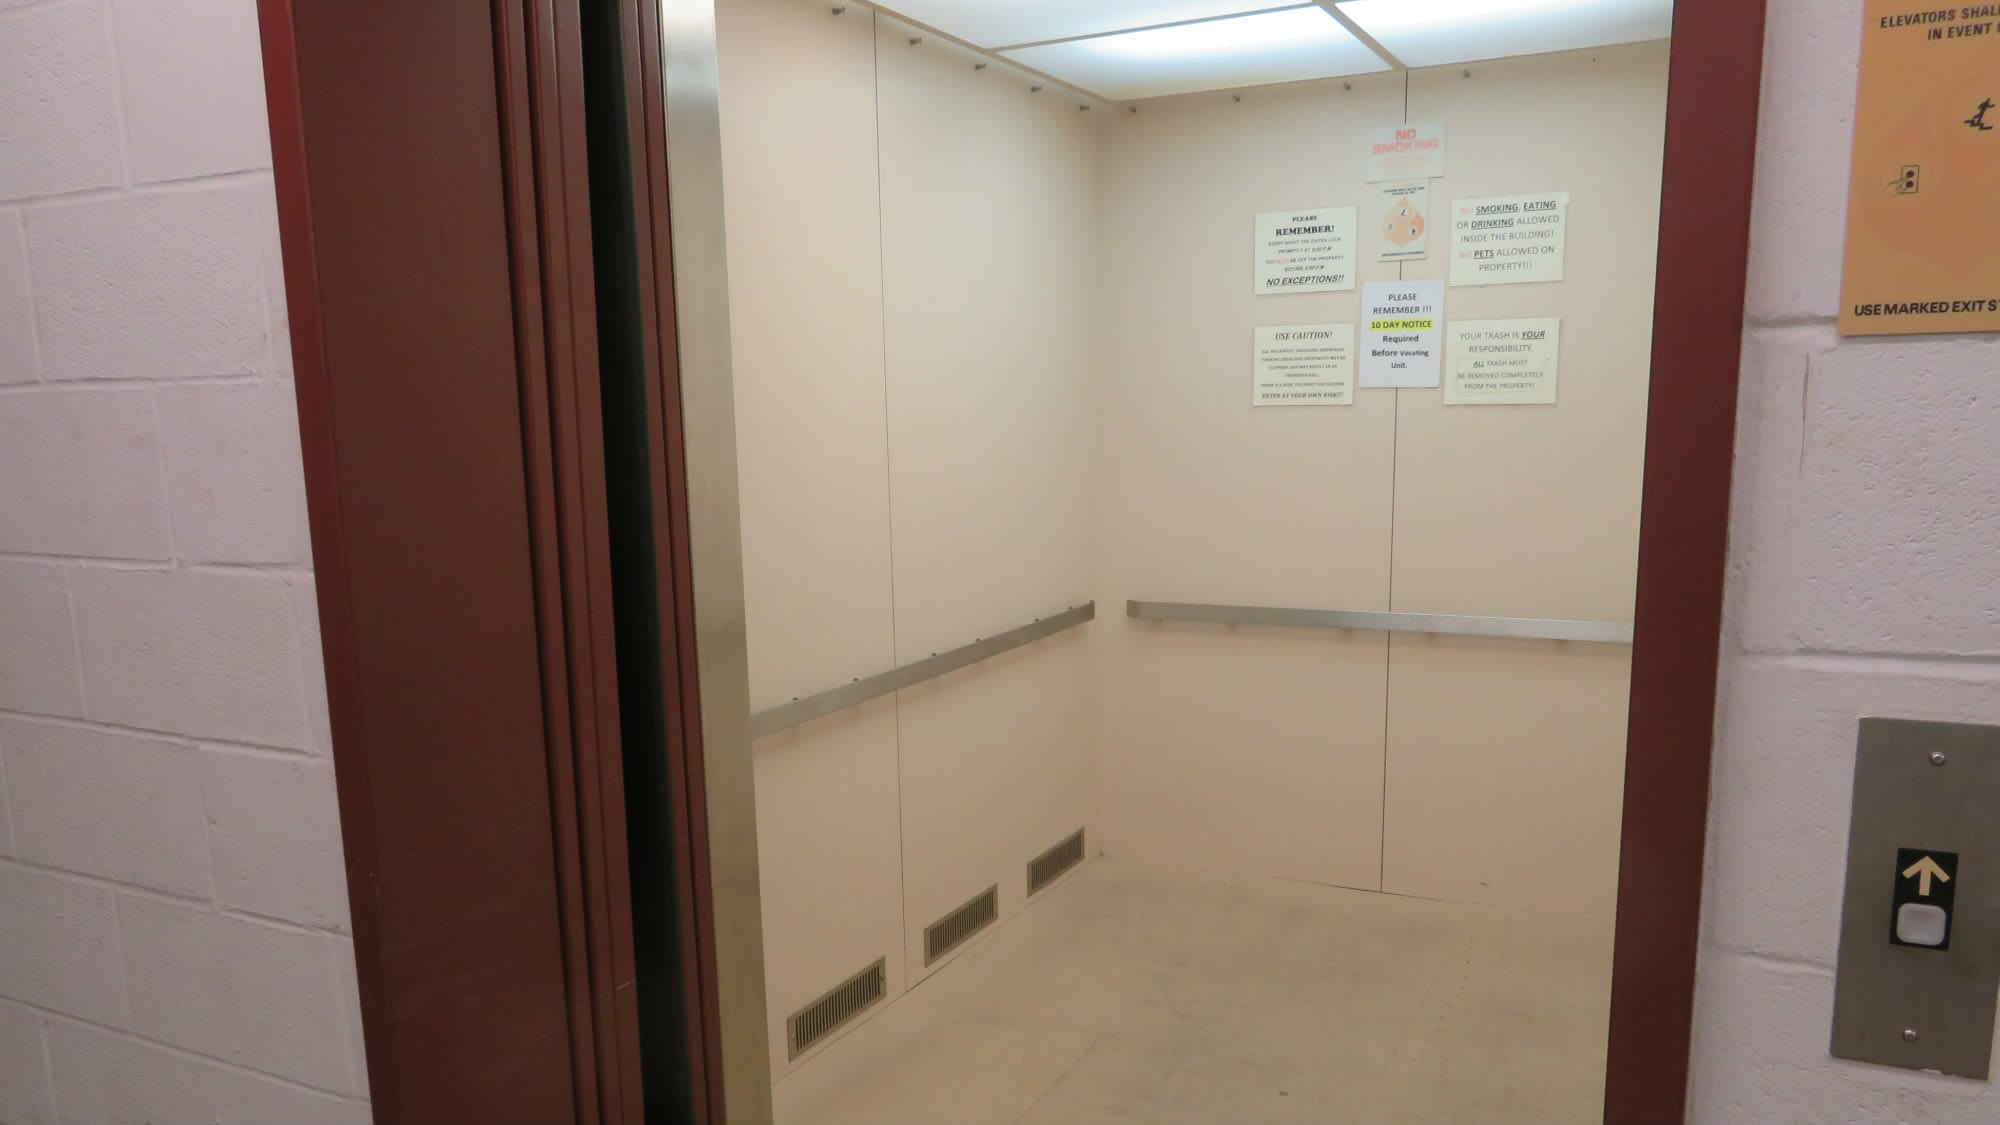 Elevator access at Odenton Self Storage in Odenton, Maryland